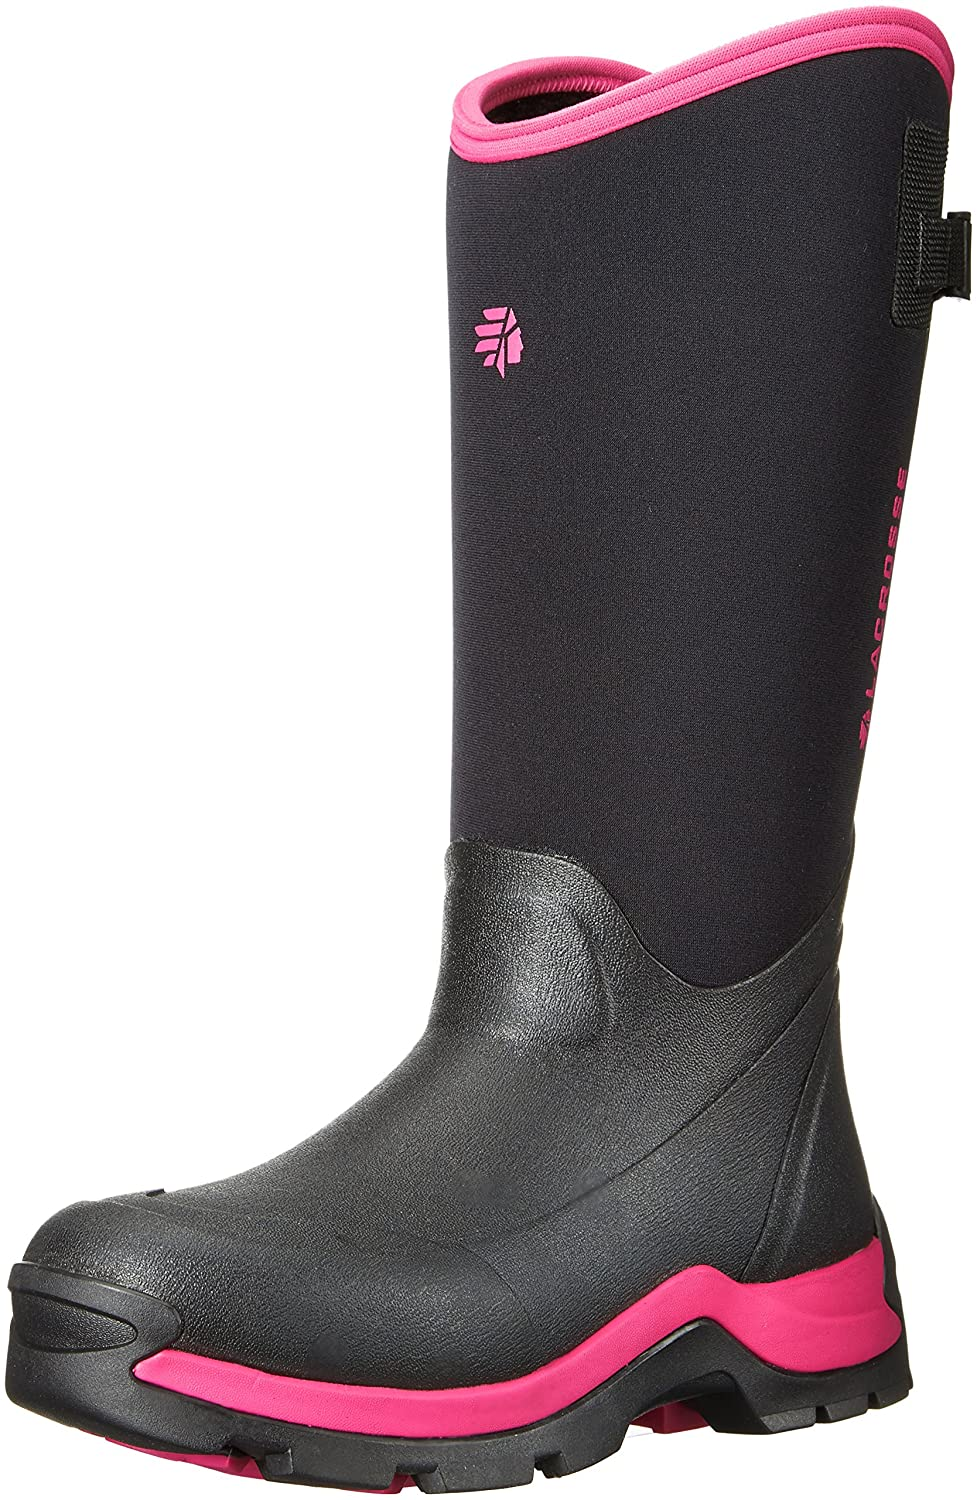 Lacrosse Women's Alpha Thermal Work Boot B01CO1JD3W 10 B(M) US|Black/Pink